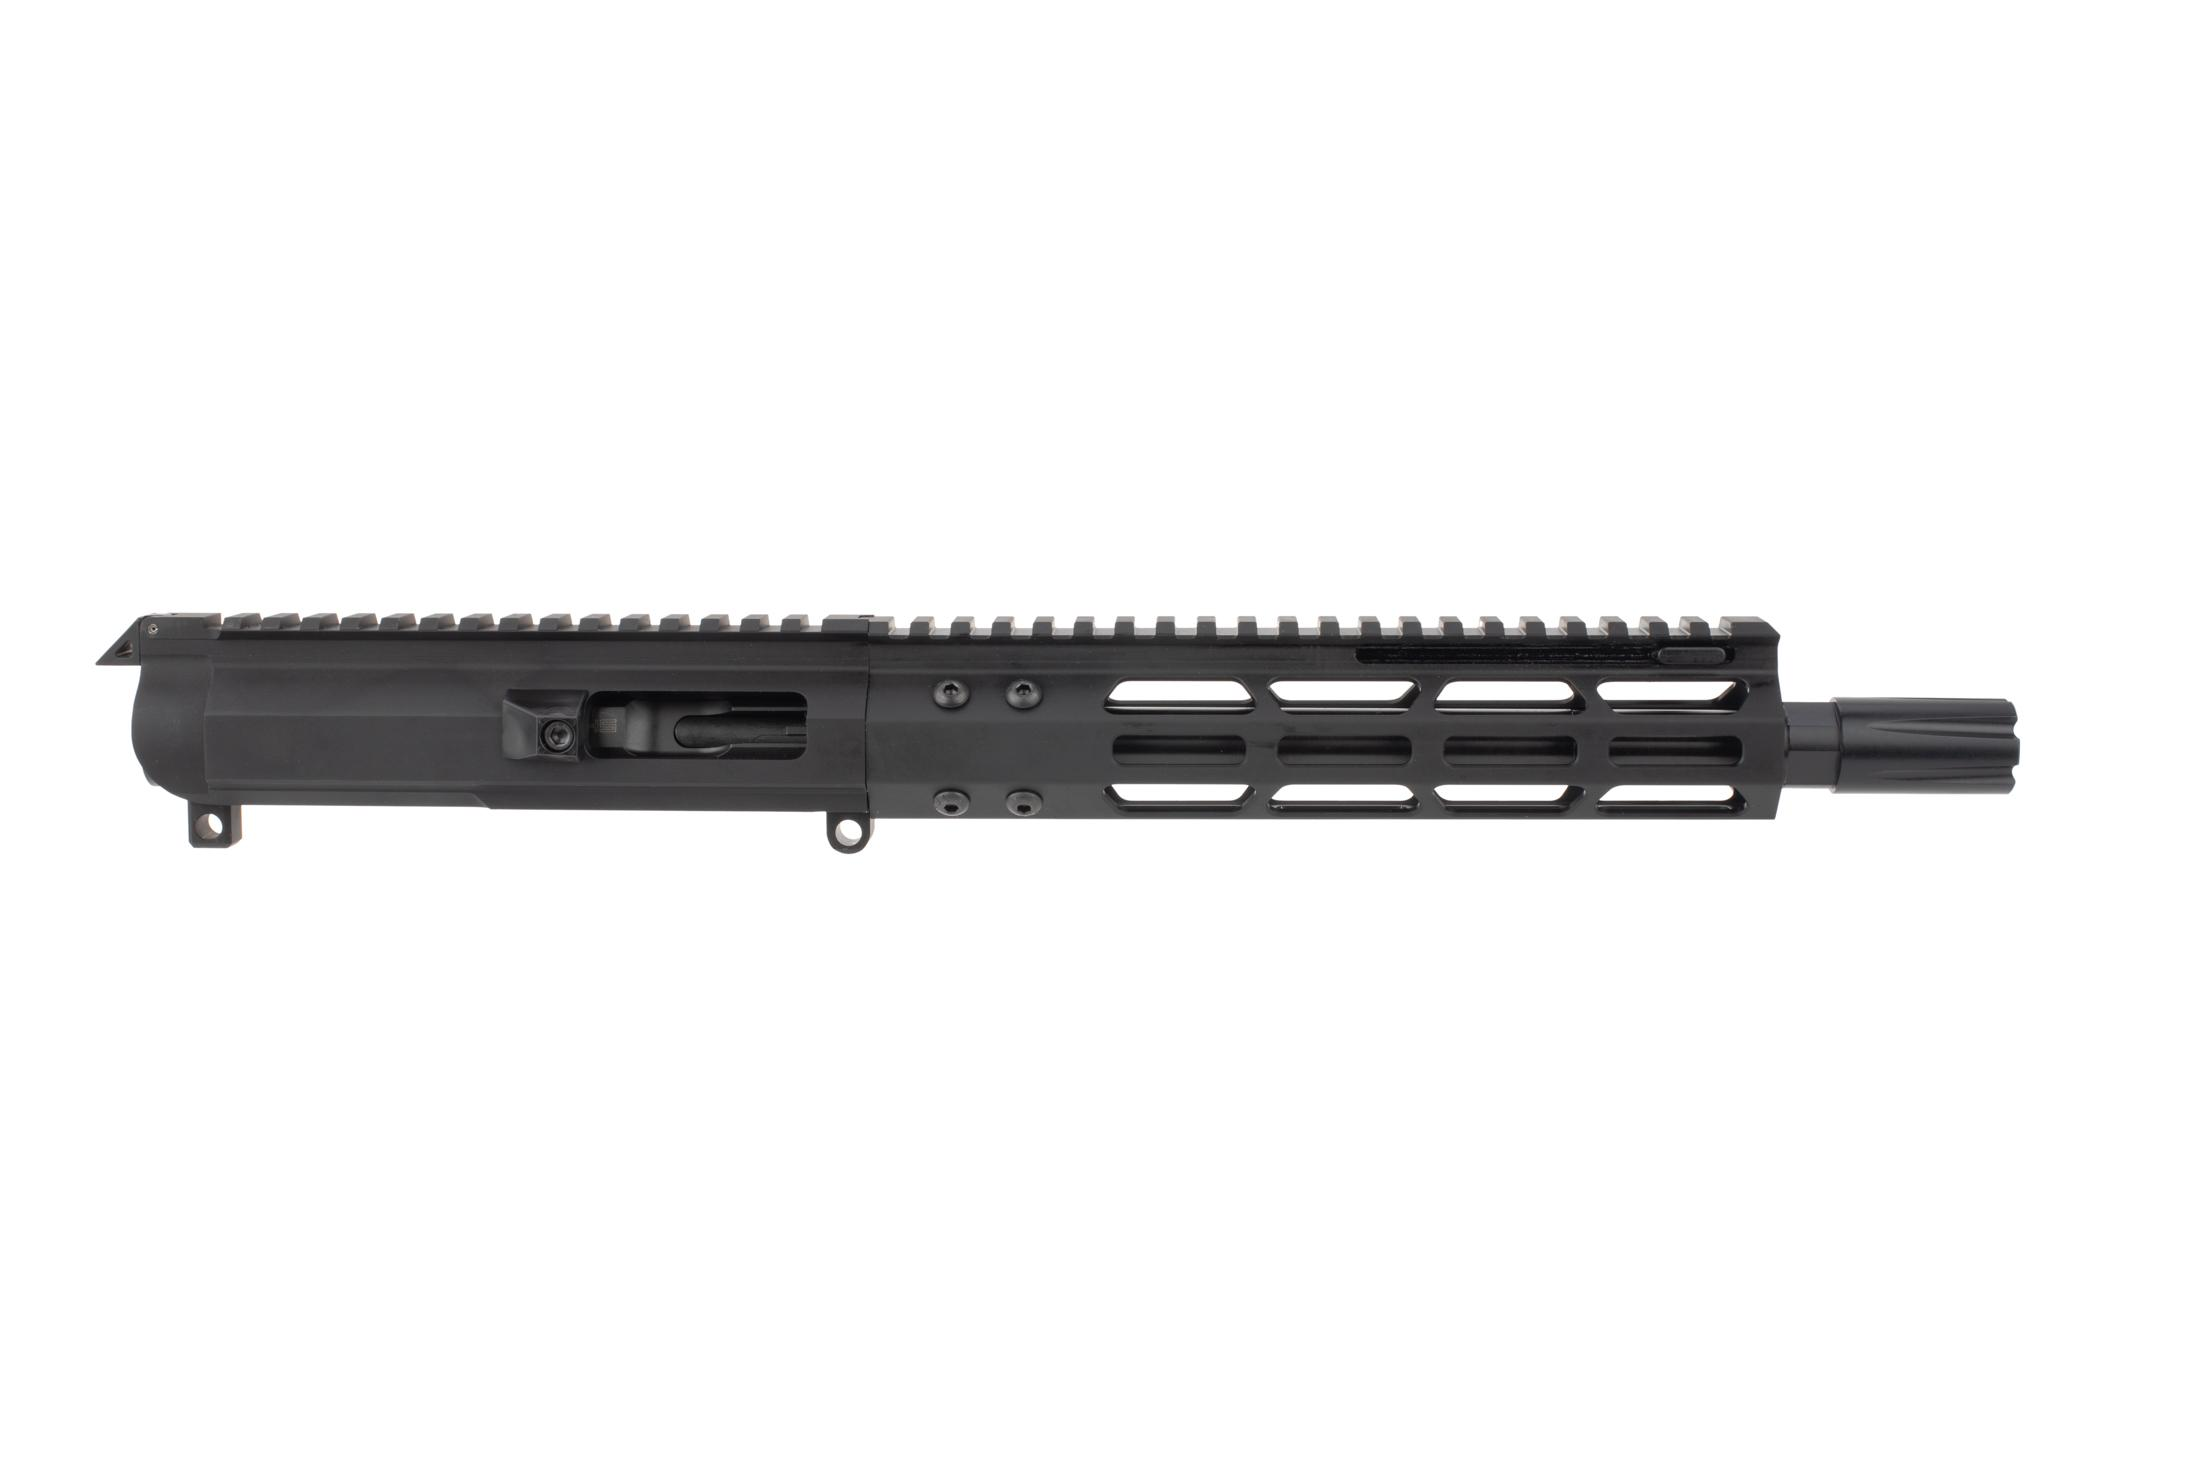 FM Products 8.5in complete AR-15 upper for .45 ACP fed by legendarily reliable Glock magazines and blowback action